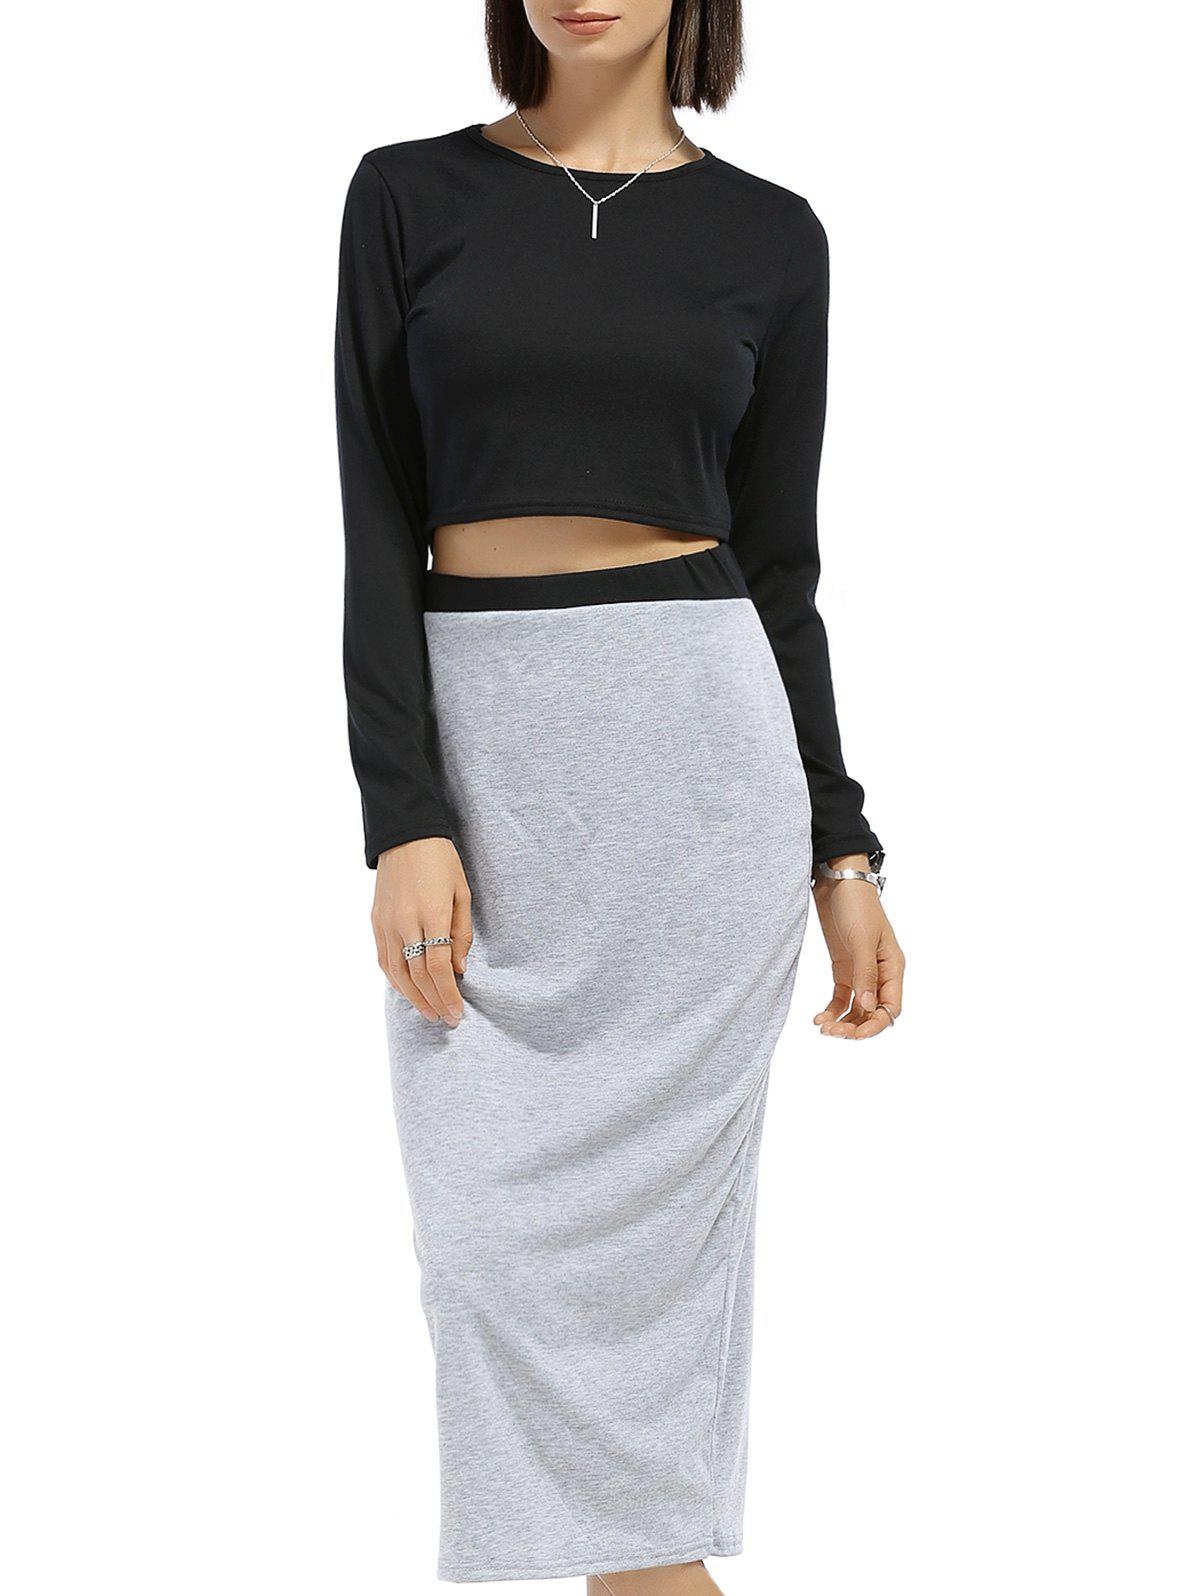 Chic Long Sleeve Round Neck Solid Color Crop Top + Spliced Skirt Women's Twinset - BLACK/GREY L